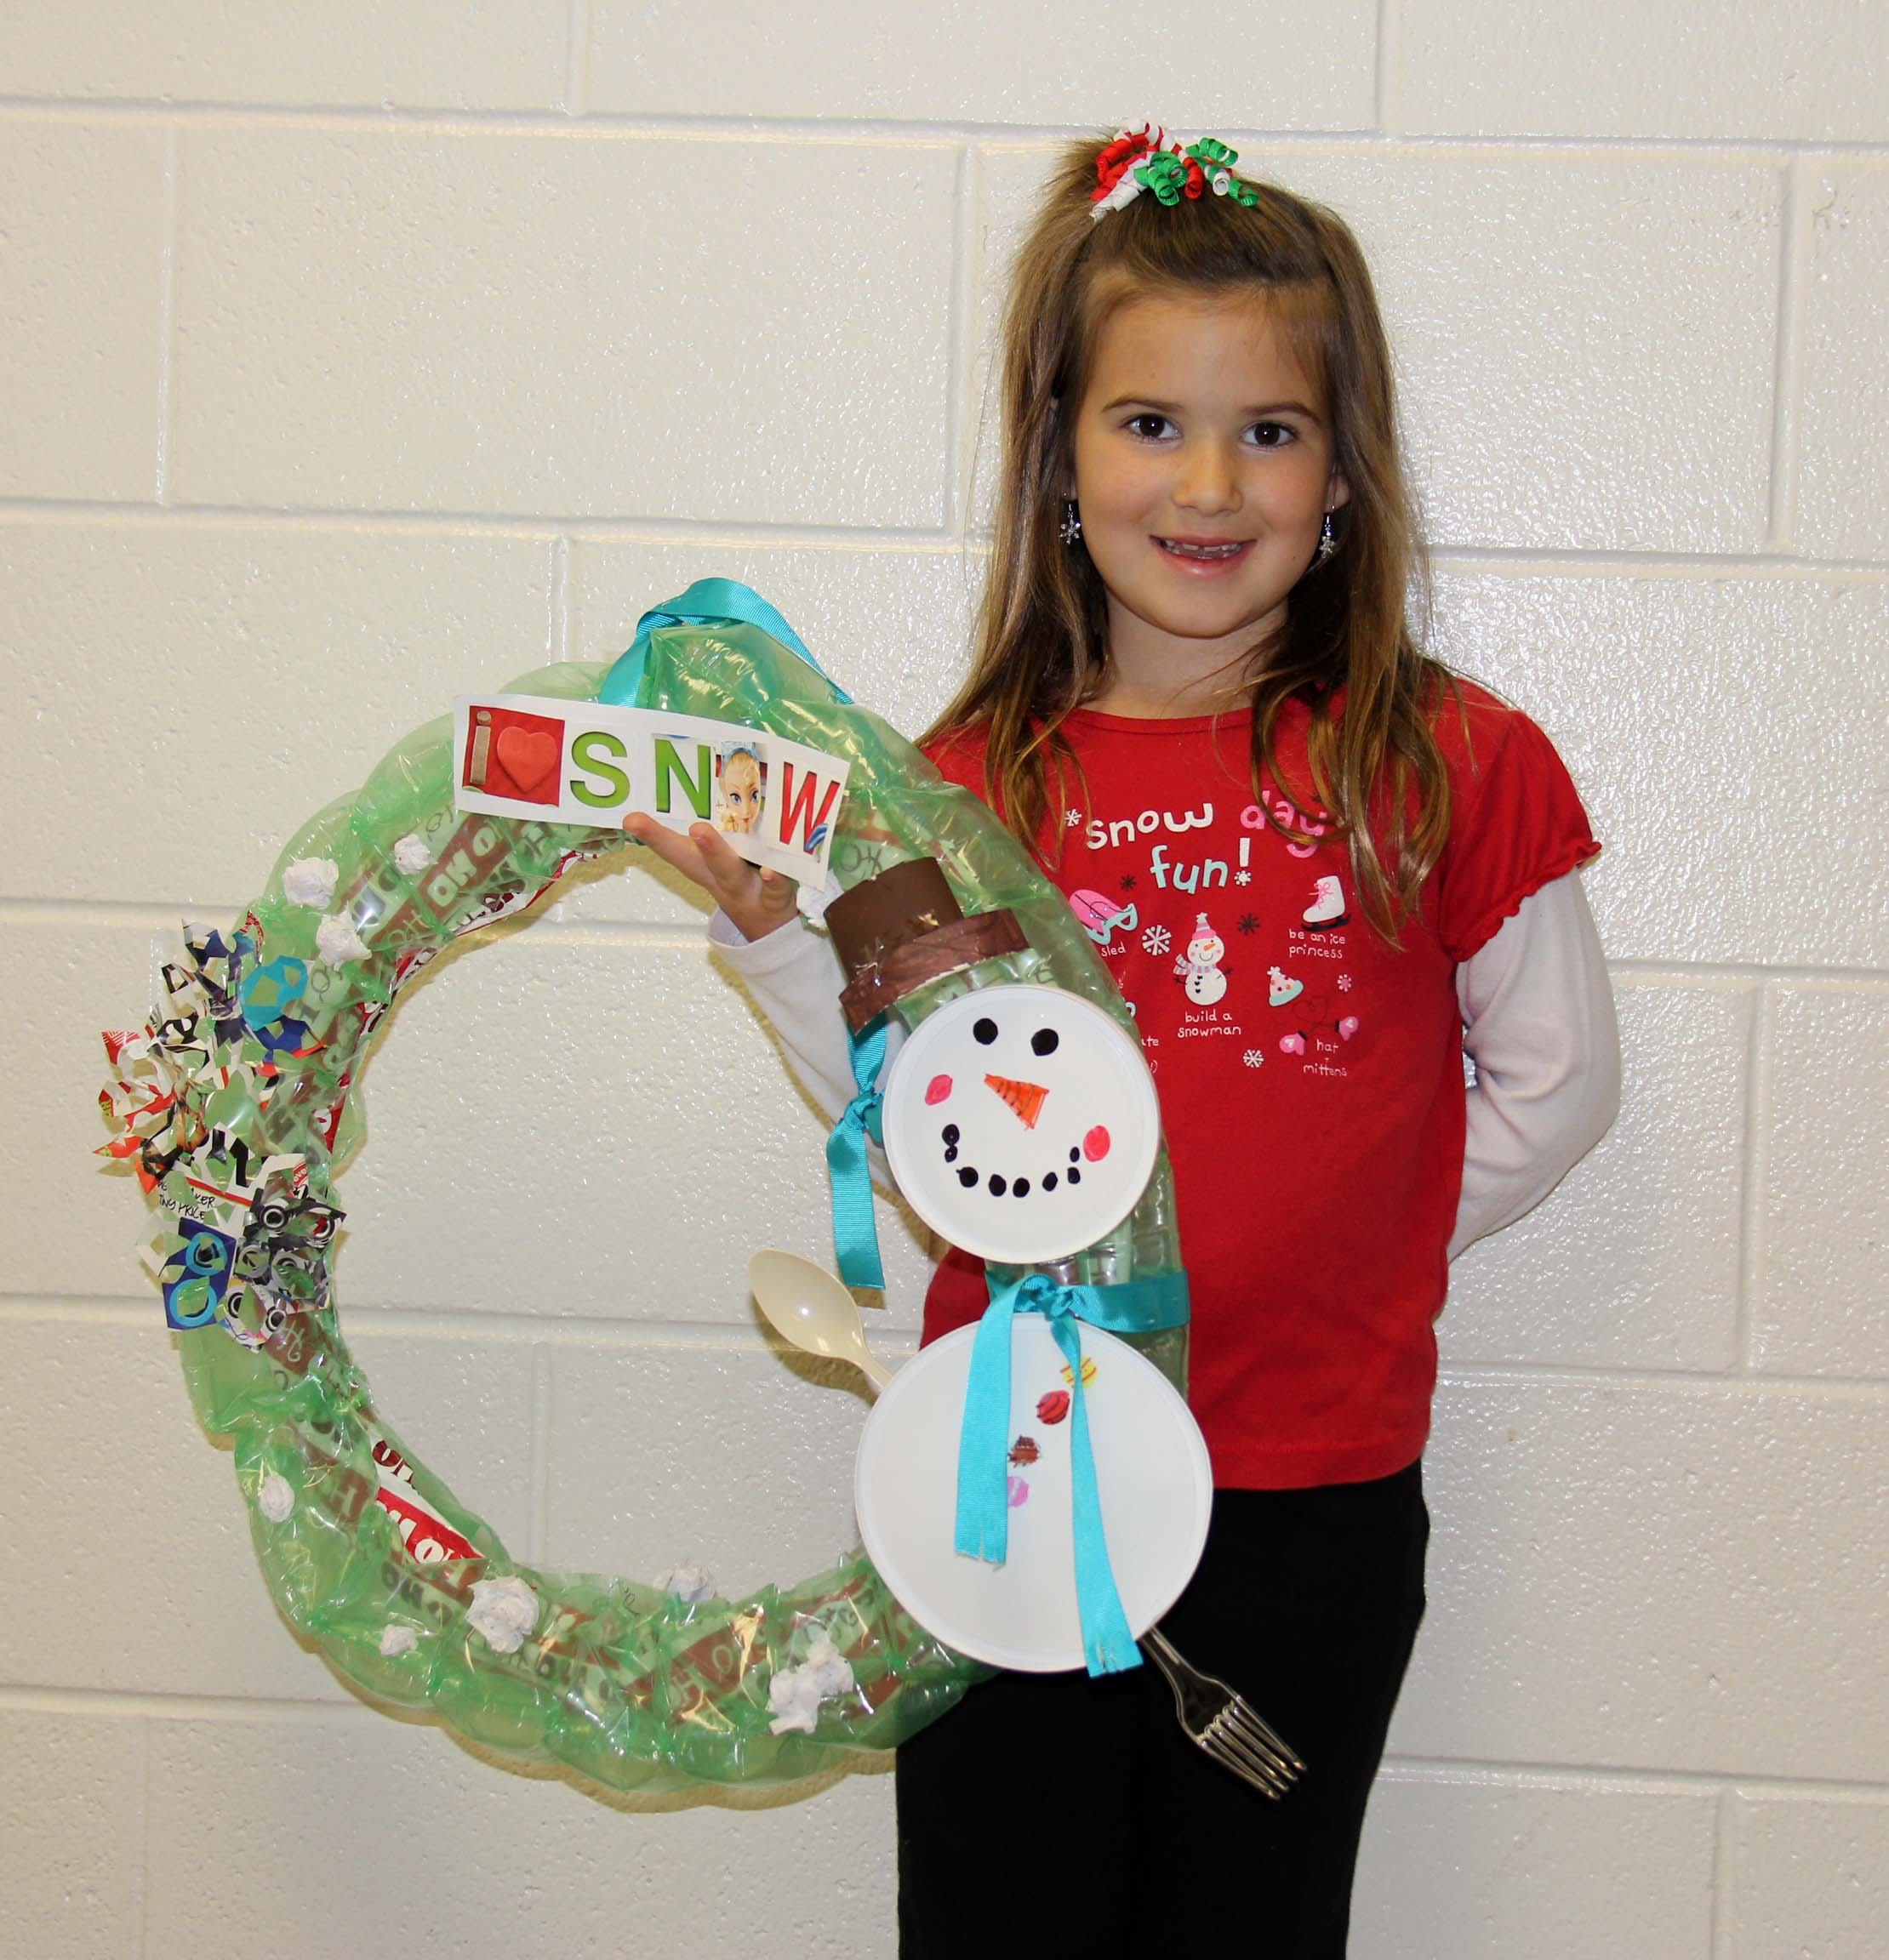 "First-grader Aubrey Leggiardro's wreath, ""I Love Snow,"" won a second place award for creativity. Her project was made of bubble wrap, wrapping paper, paper towel rolls, plastic utensils and lids."